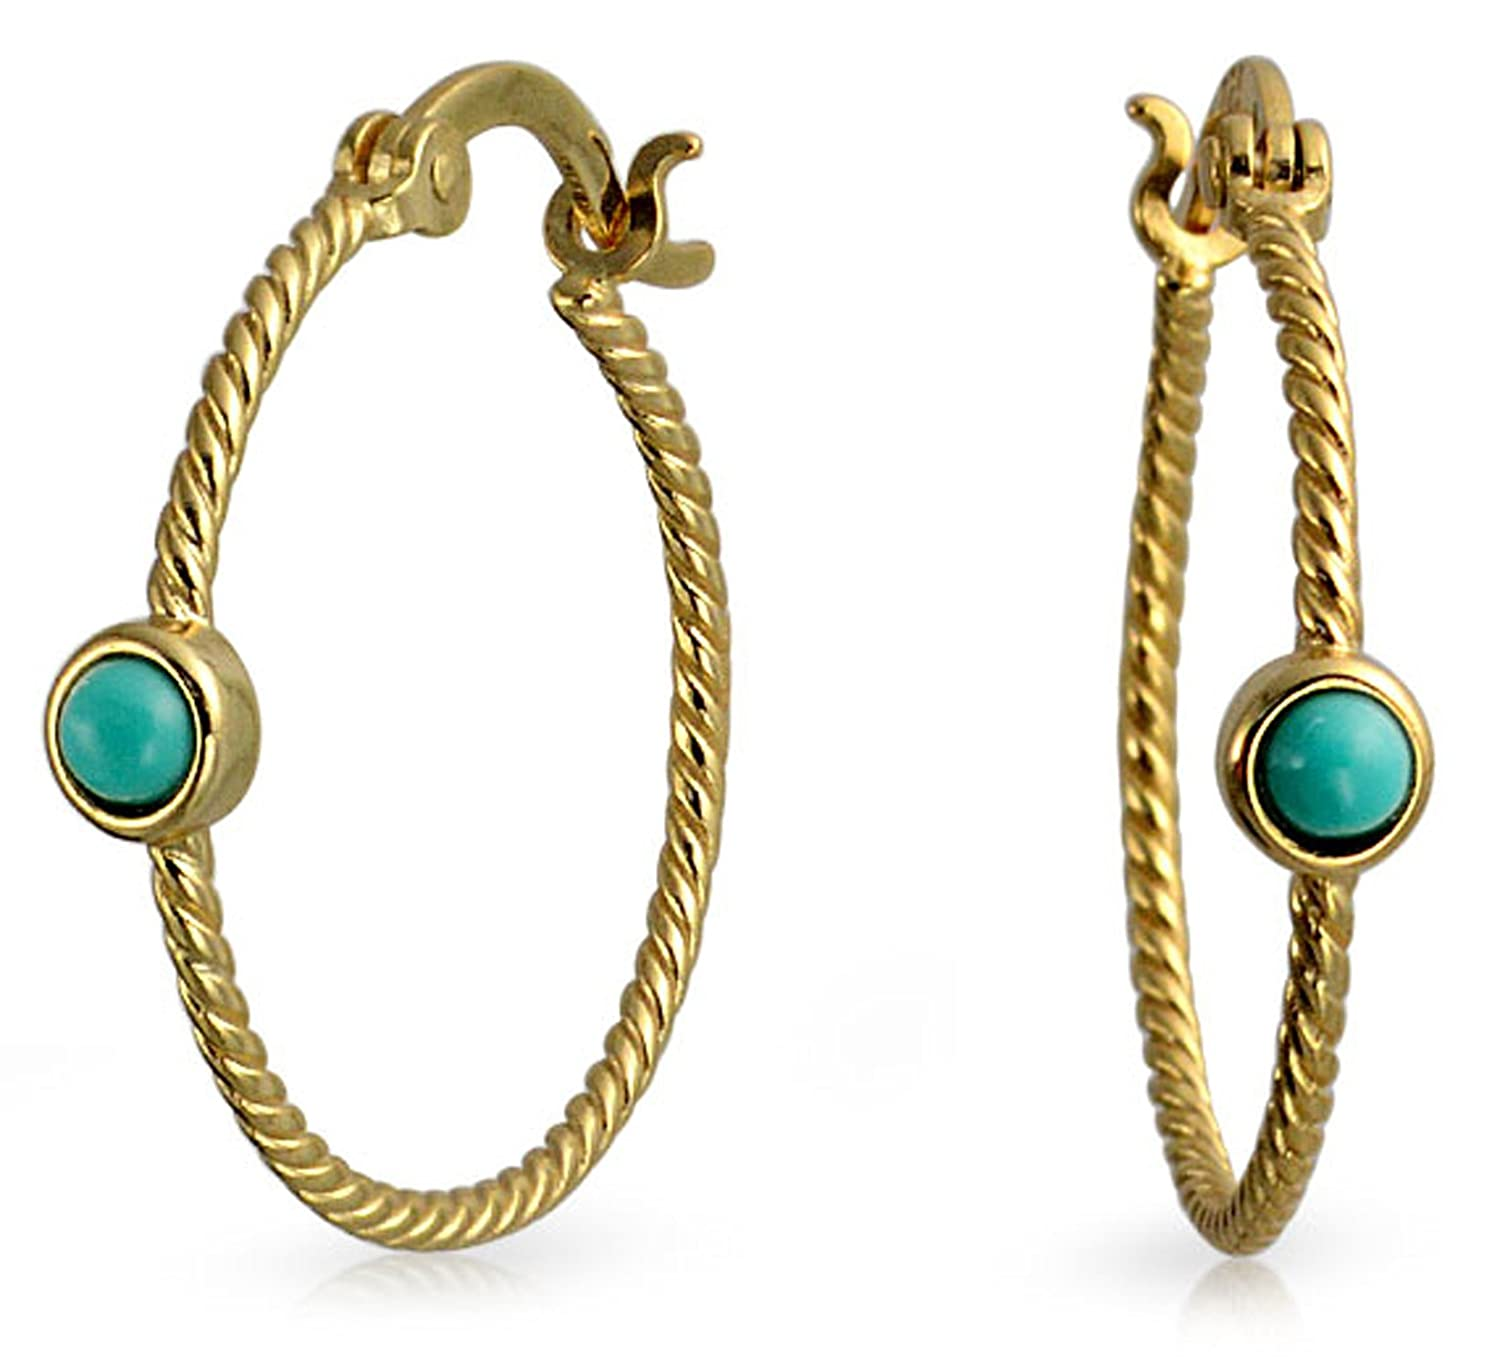 6e1862749 Amazon.com: Twisted Cable Rope Thin Hoop Earrings Turquoise Accent for  Women 14K Gold Plated 925 Sterling Silver 1 Inch Dia: Jewelry